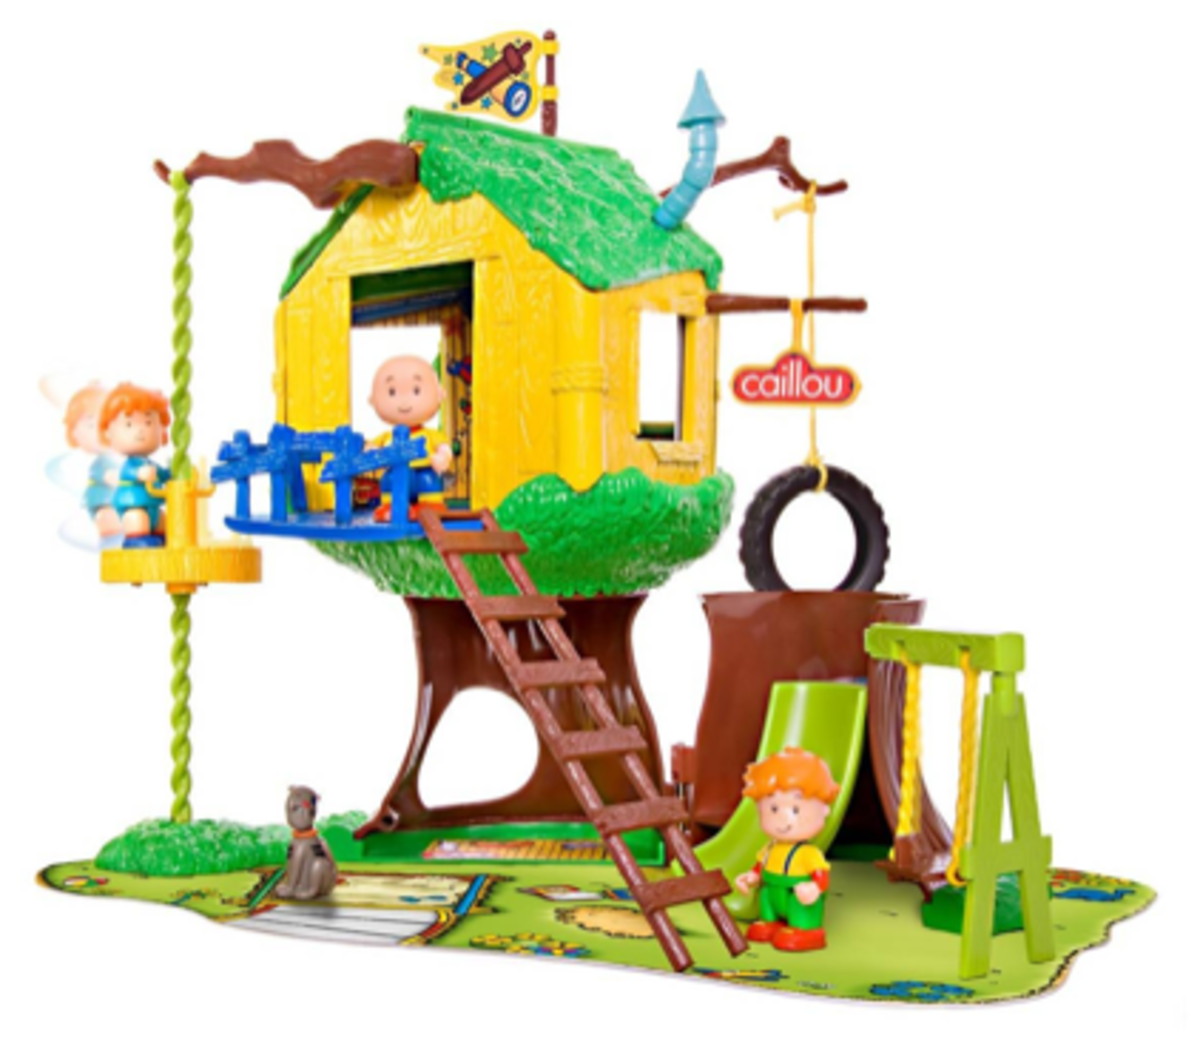 Caillou Treehouse